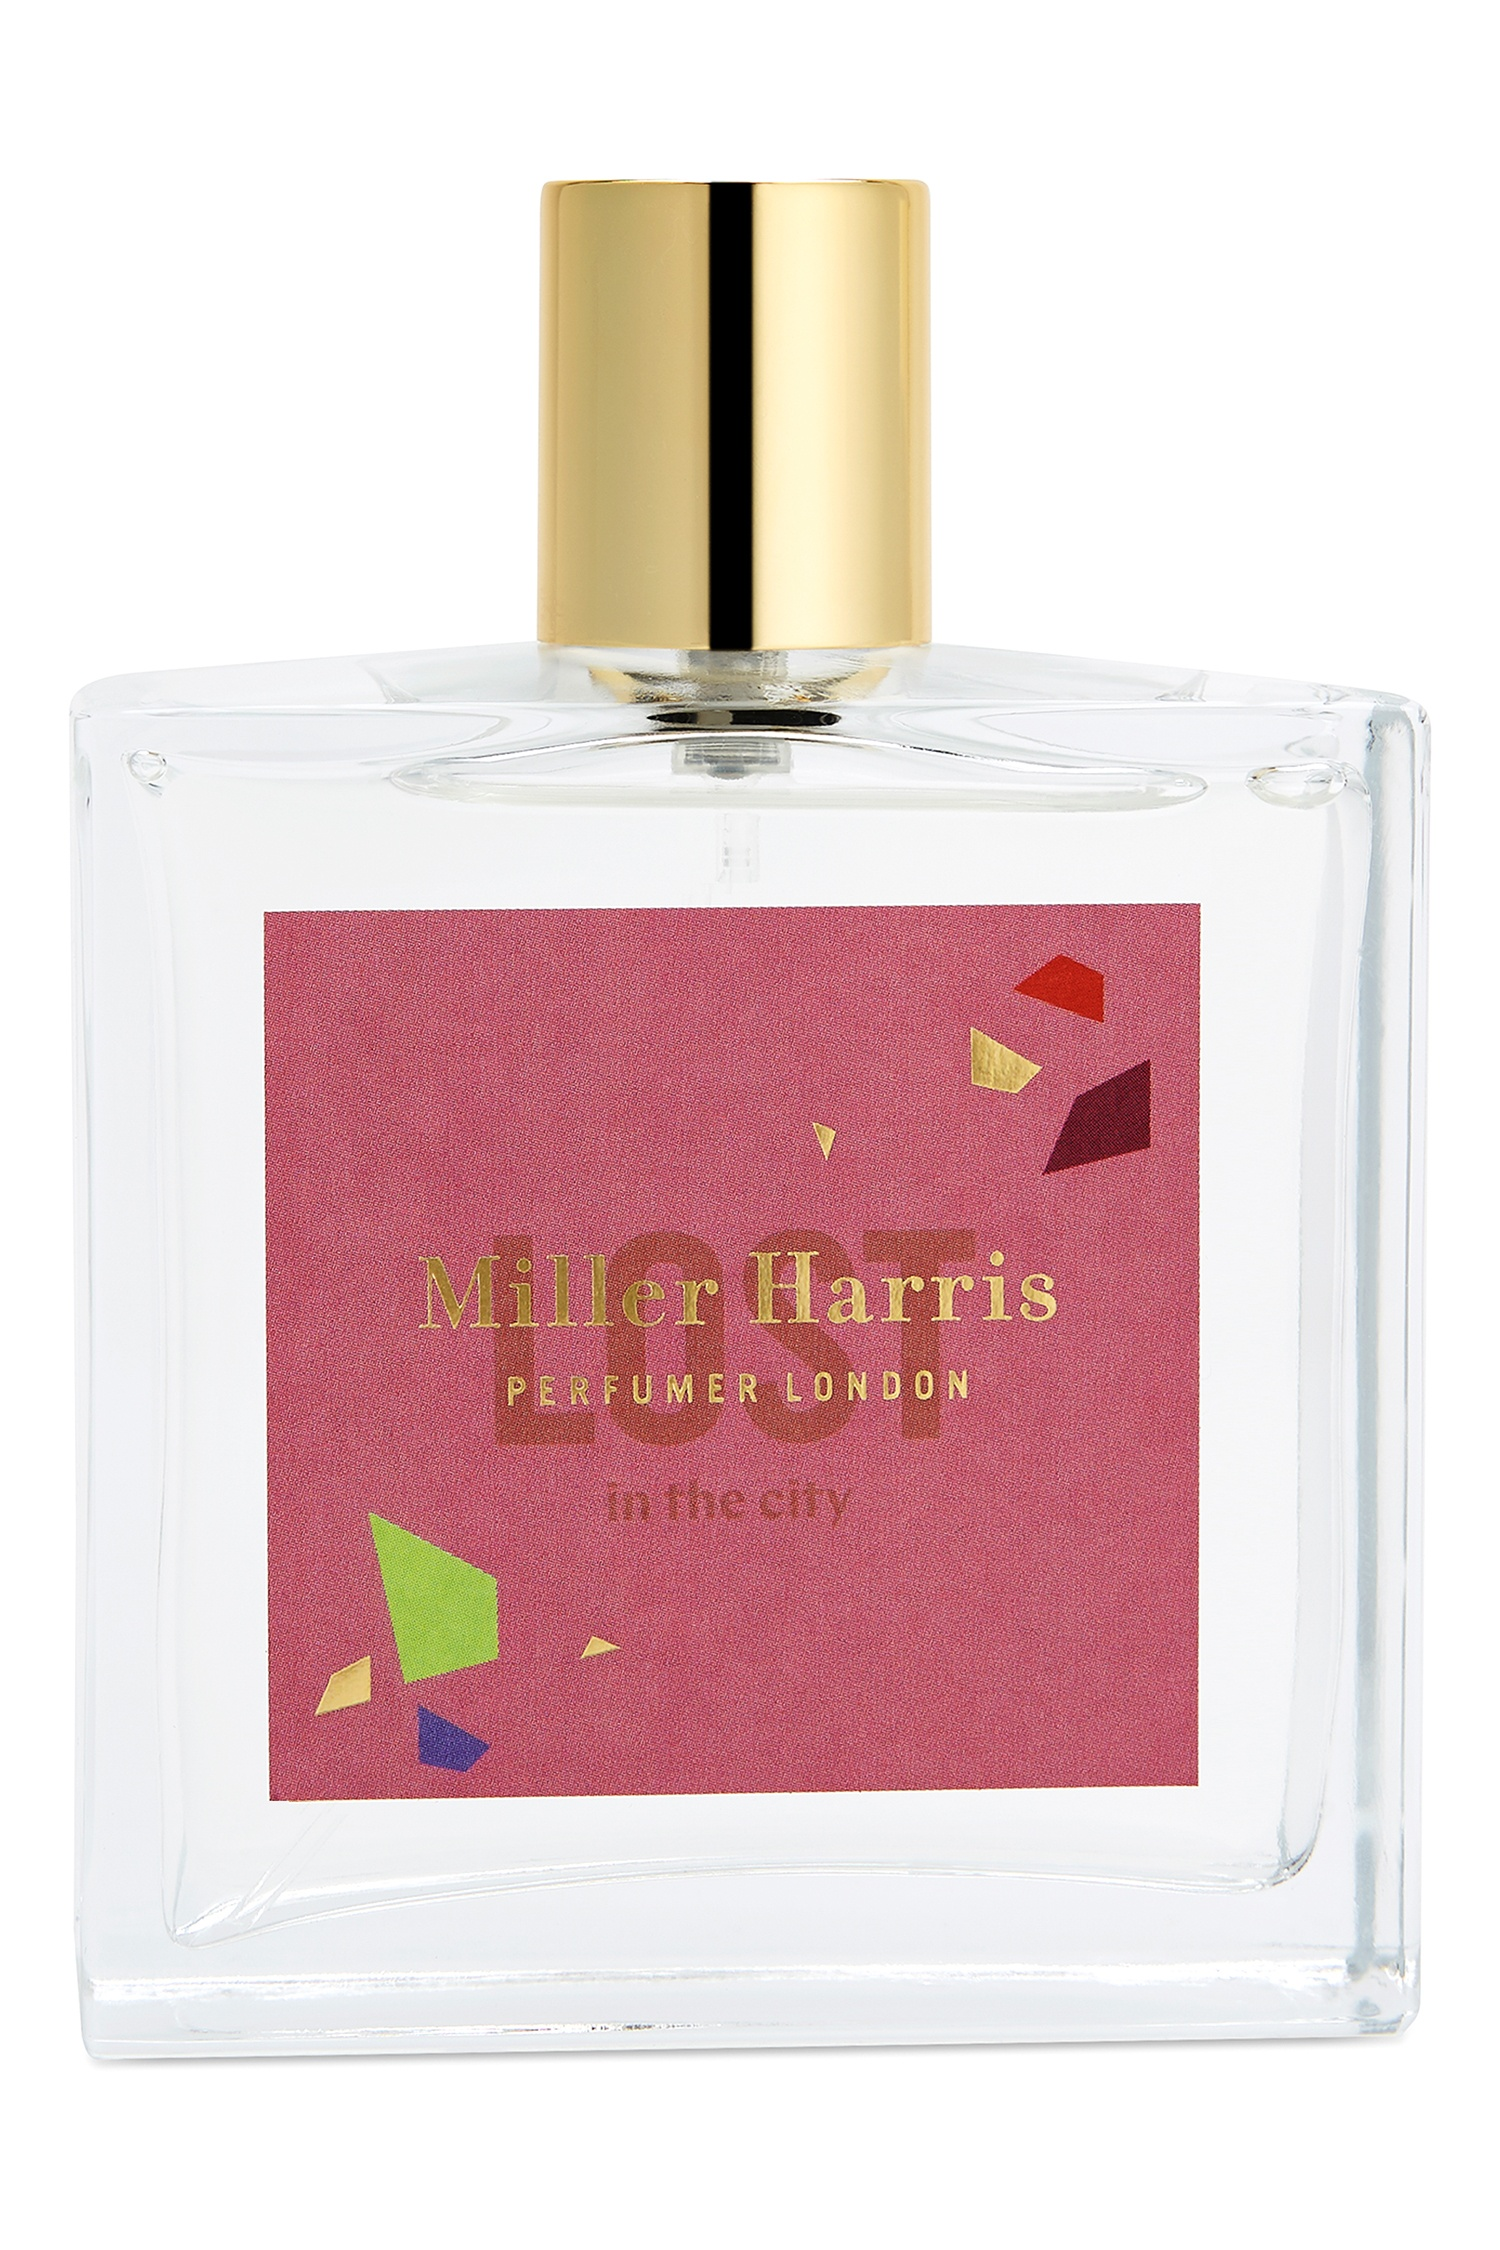 Парфюмерная вода Lost In The City, 100 ml Miller Harris (фото)